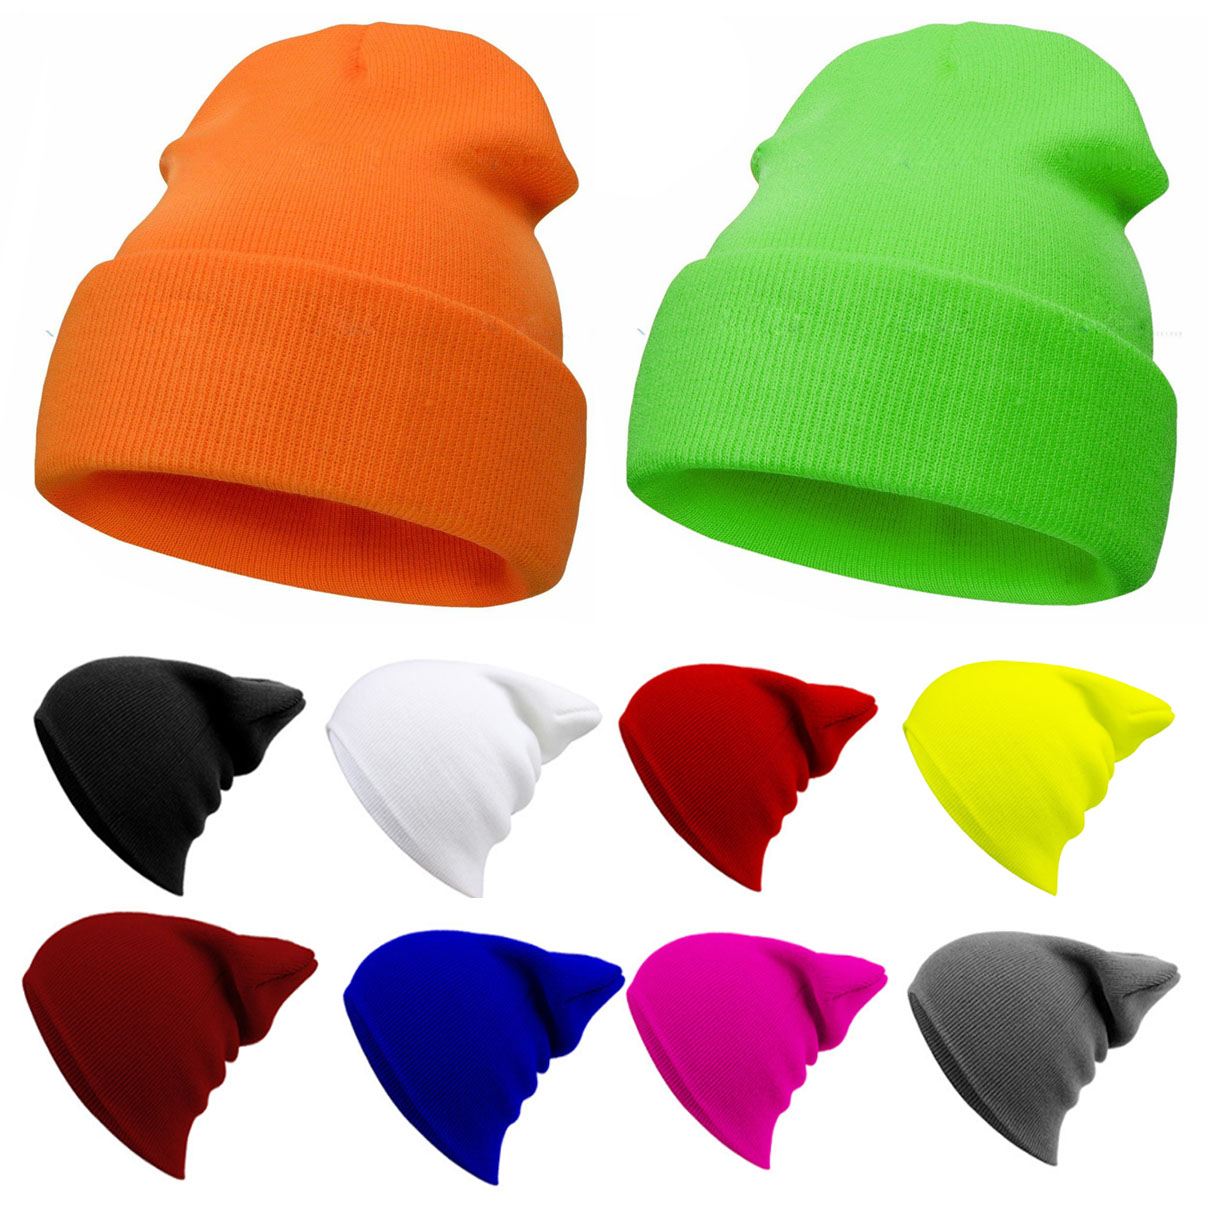 Unisex Beanie Plain Knitted Hat Autumn Winter Warm Ski Cuff Cap Wool Blends Soft Slouchy Skull Caps Beanies For Men Women Hats